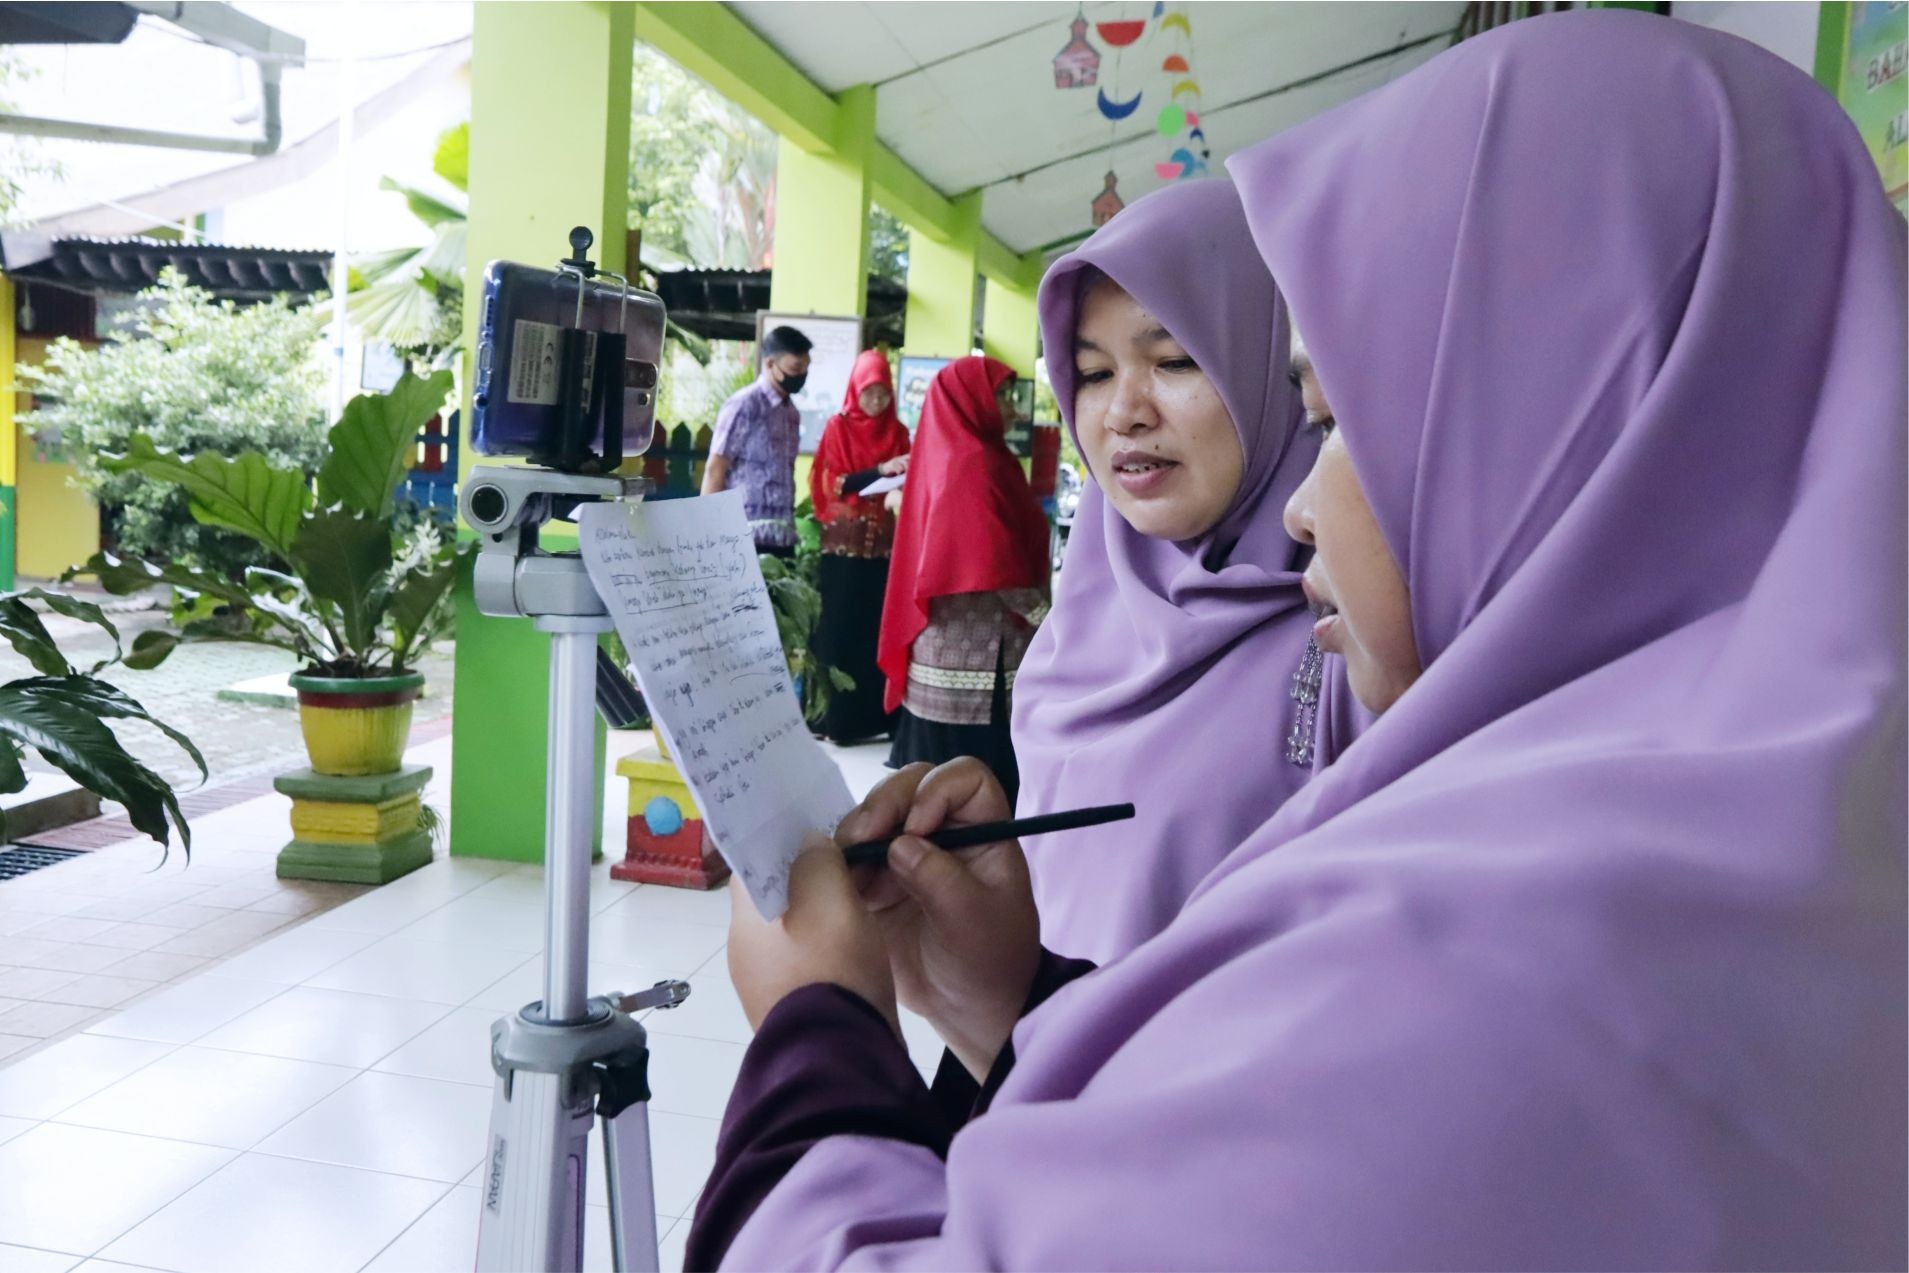 Guru Hebat, Guru Milenial. 20 Guru TK IT YABIS Ikuti Pelatihan Editing Video